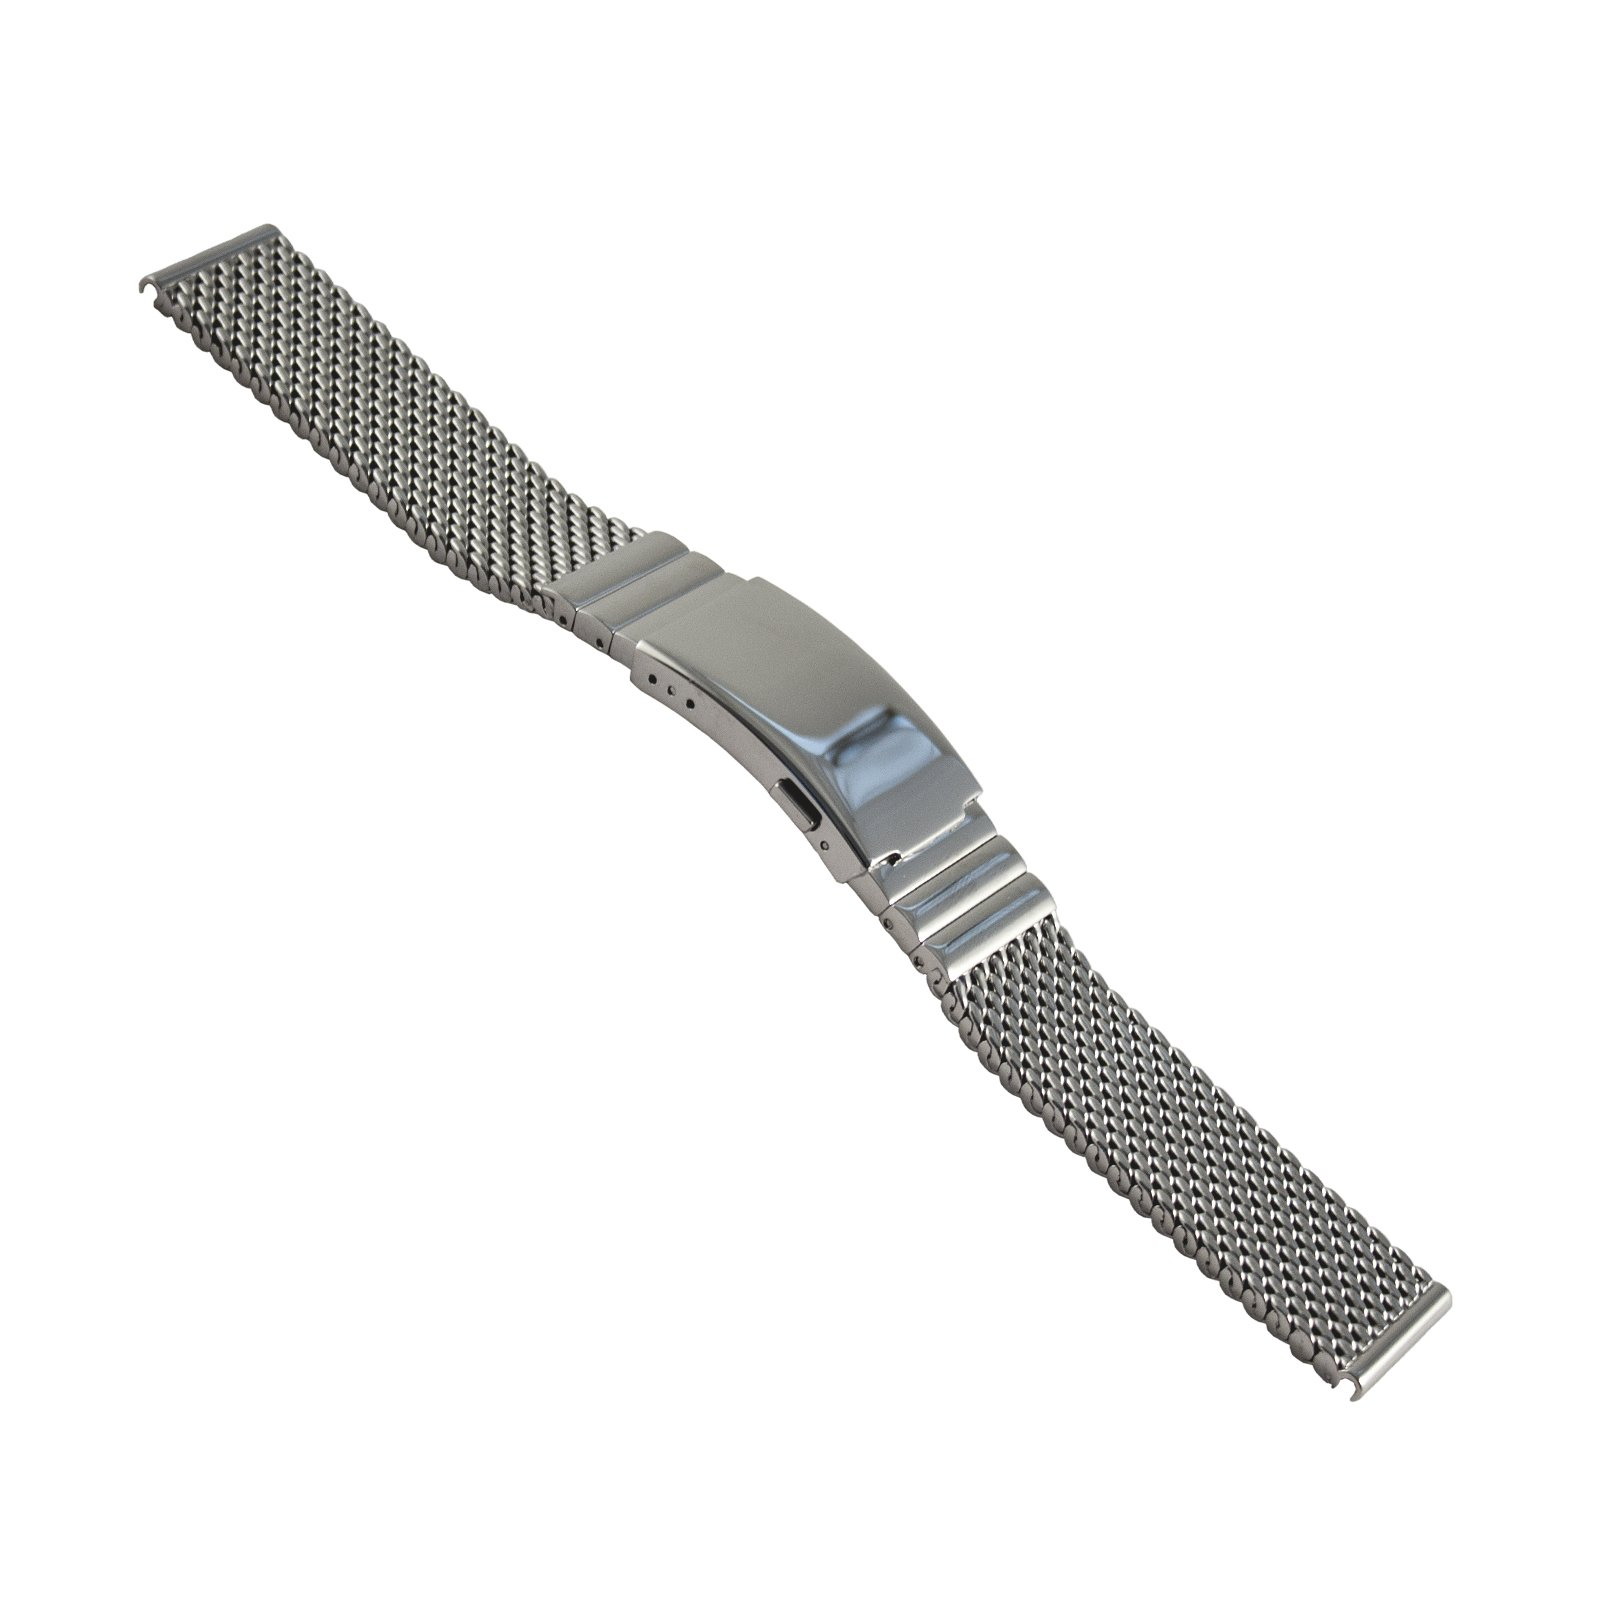 Staib milanaise/mesh Watch Strap Deluxe, Diver Buckle, Width 20 mm, Length 150 mm, 2792-2